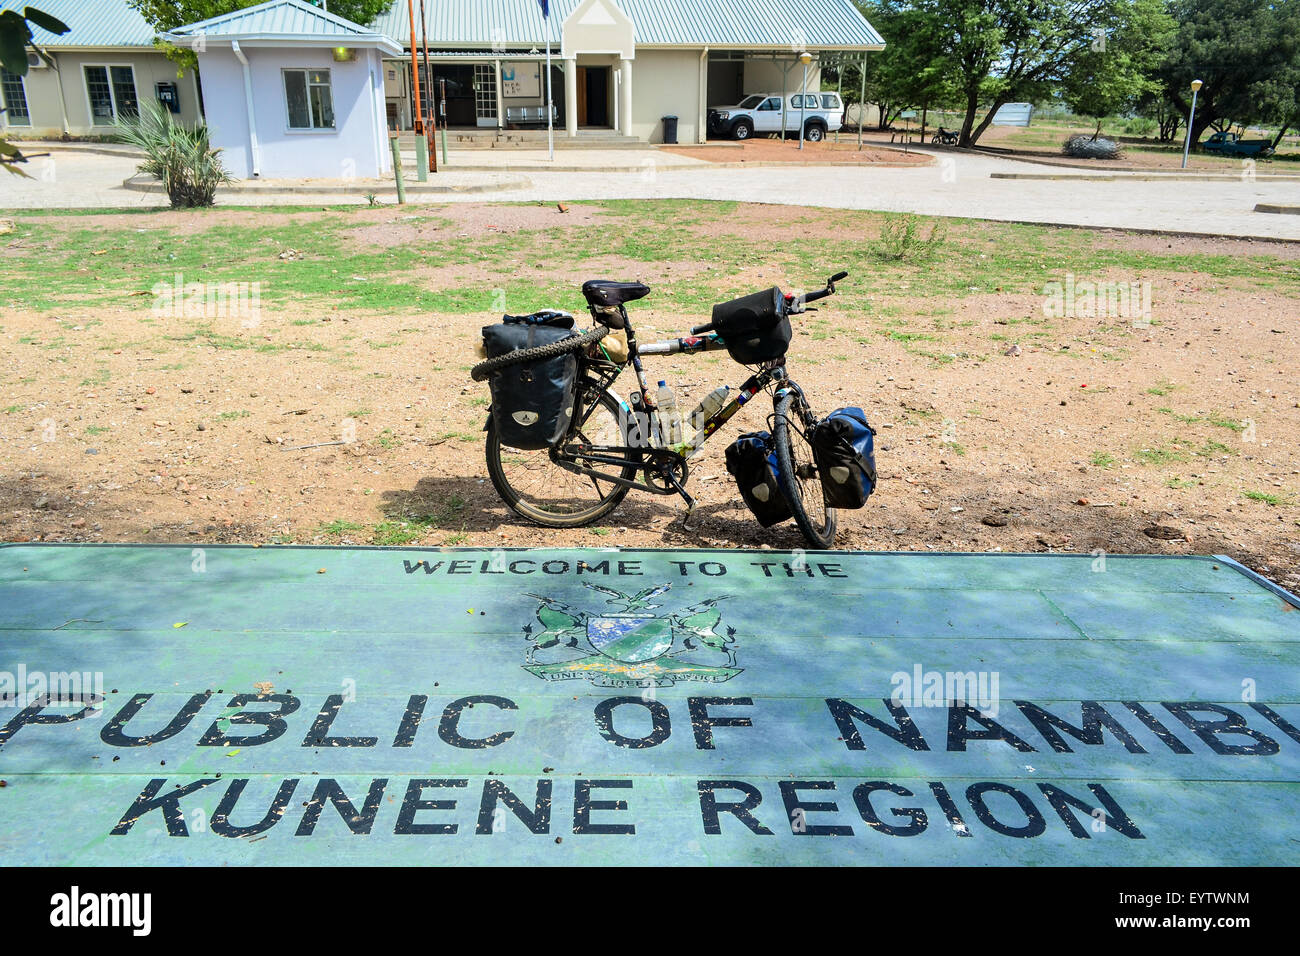 Namibian border post - Sign reading Republic of Namibia - Kunene region, at the border with Angola, and a touring - Stock Image